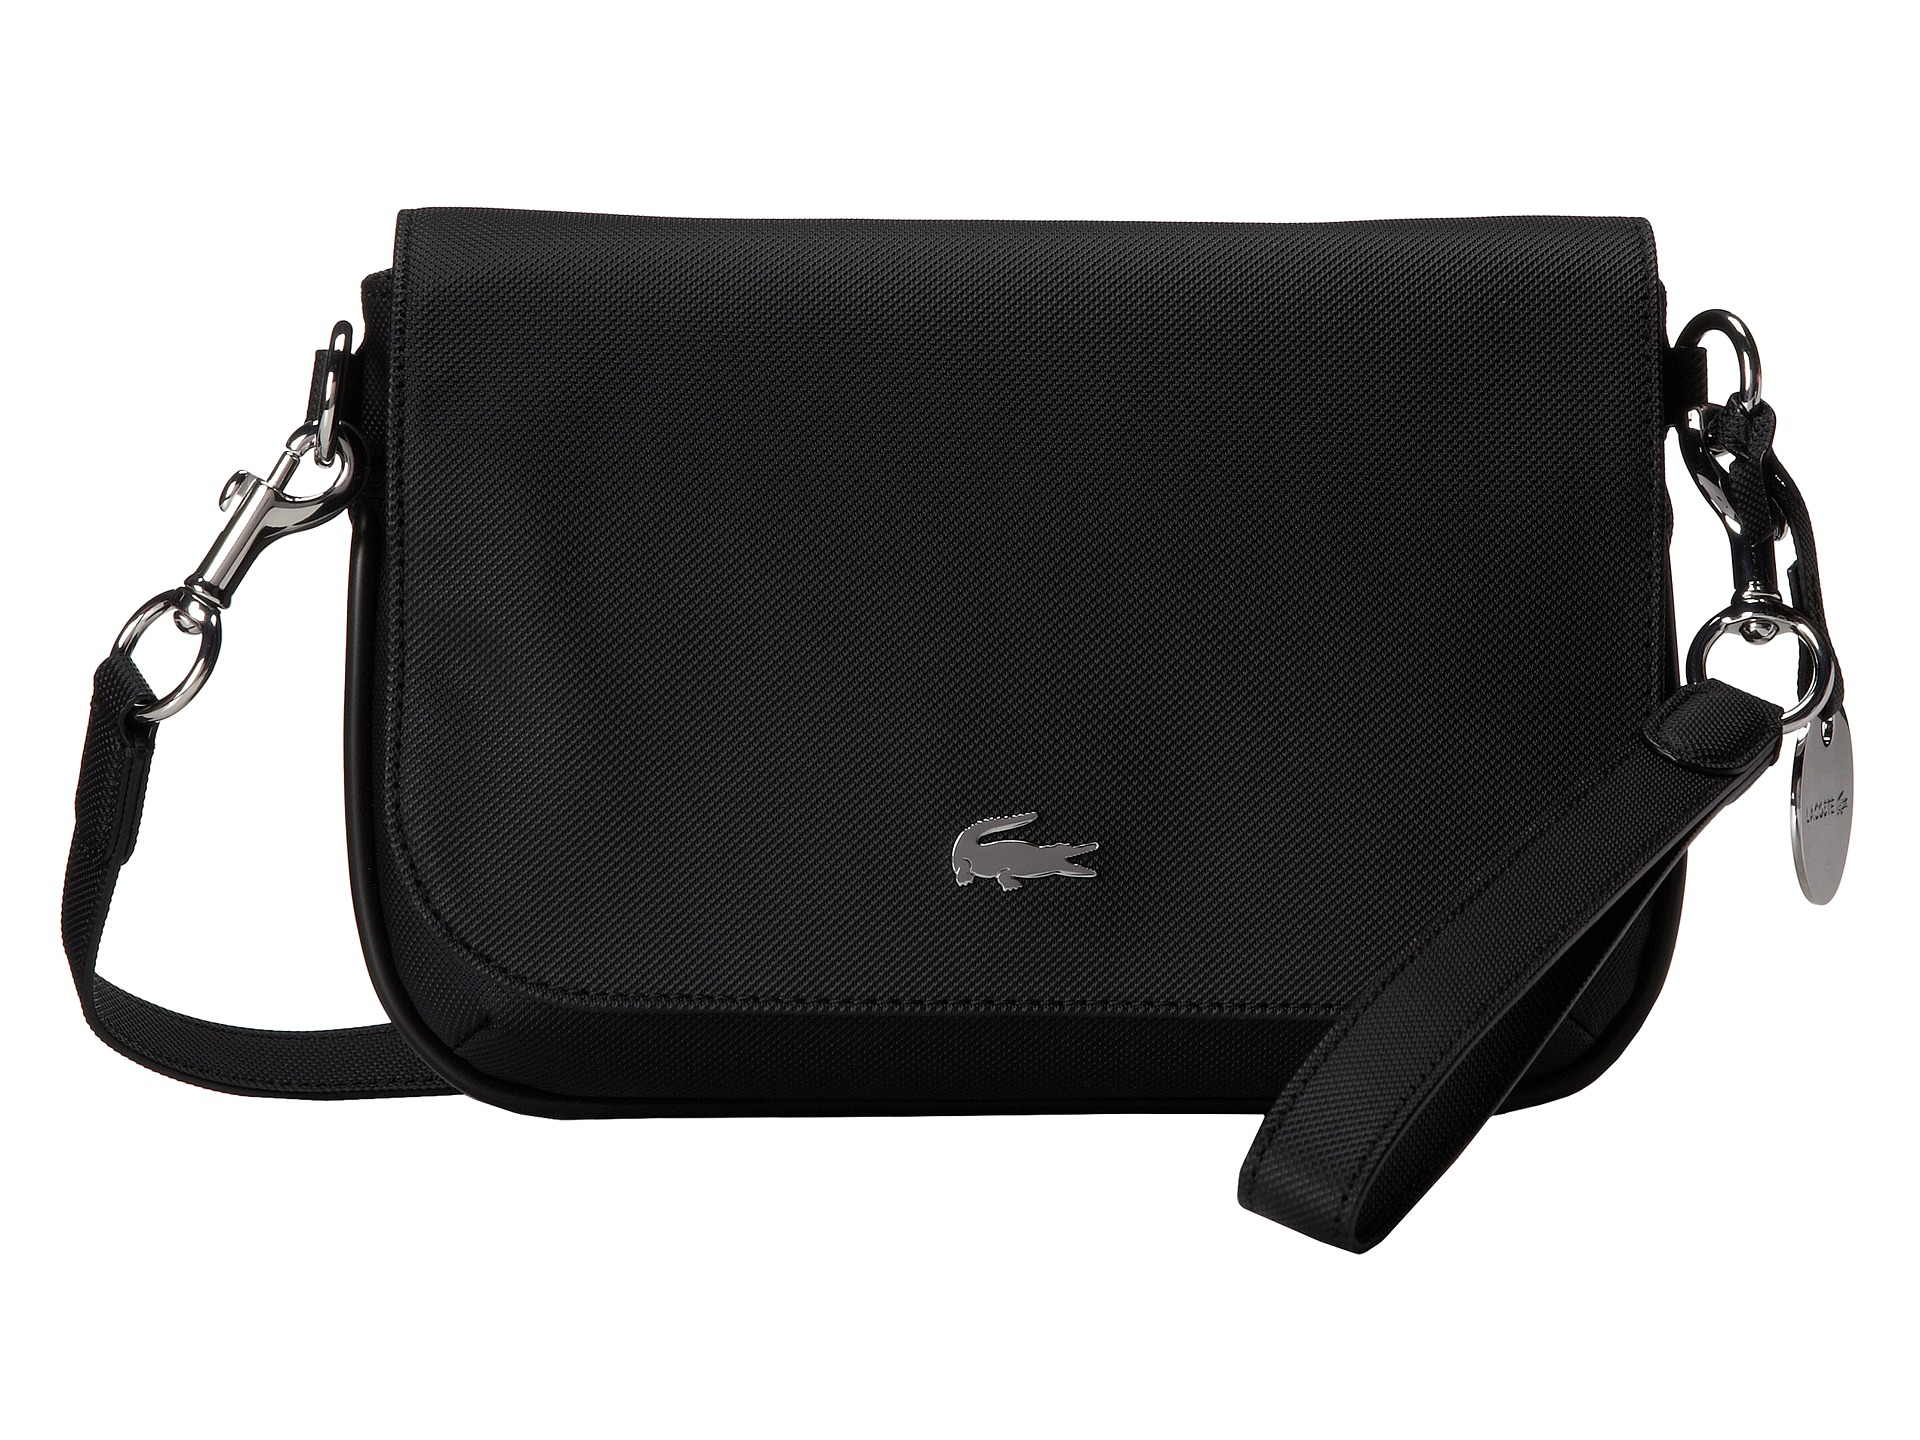 10c44a123 Lyst - Lacoste Daily Classic Crossover Bag in Black